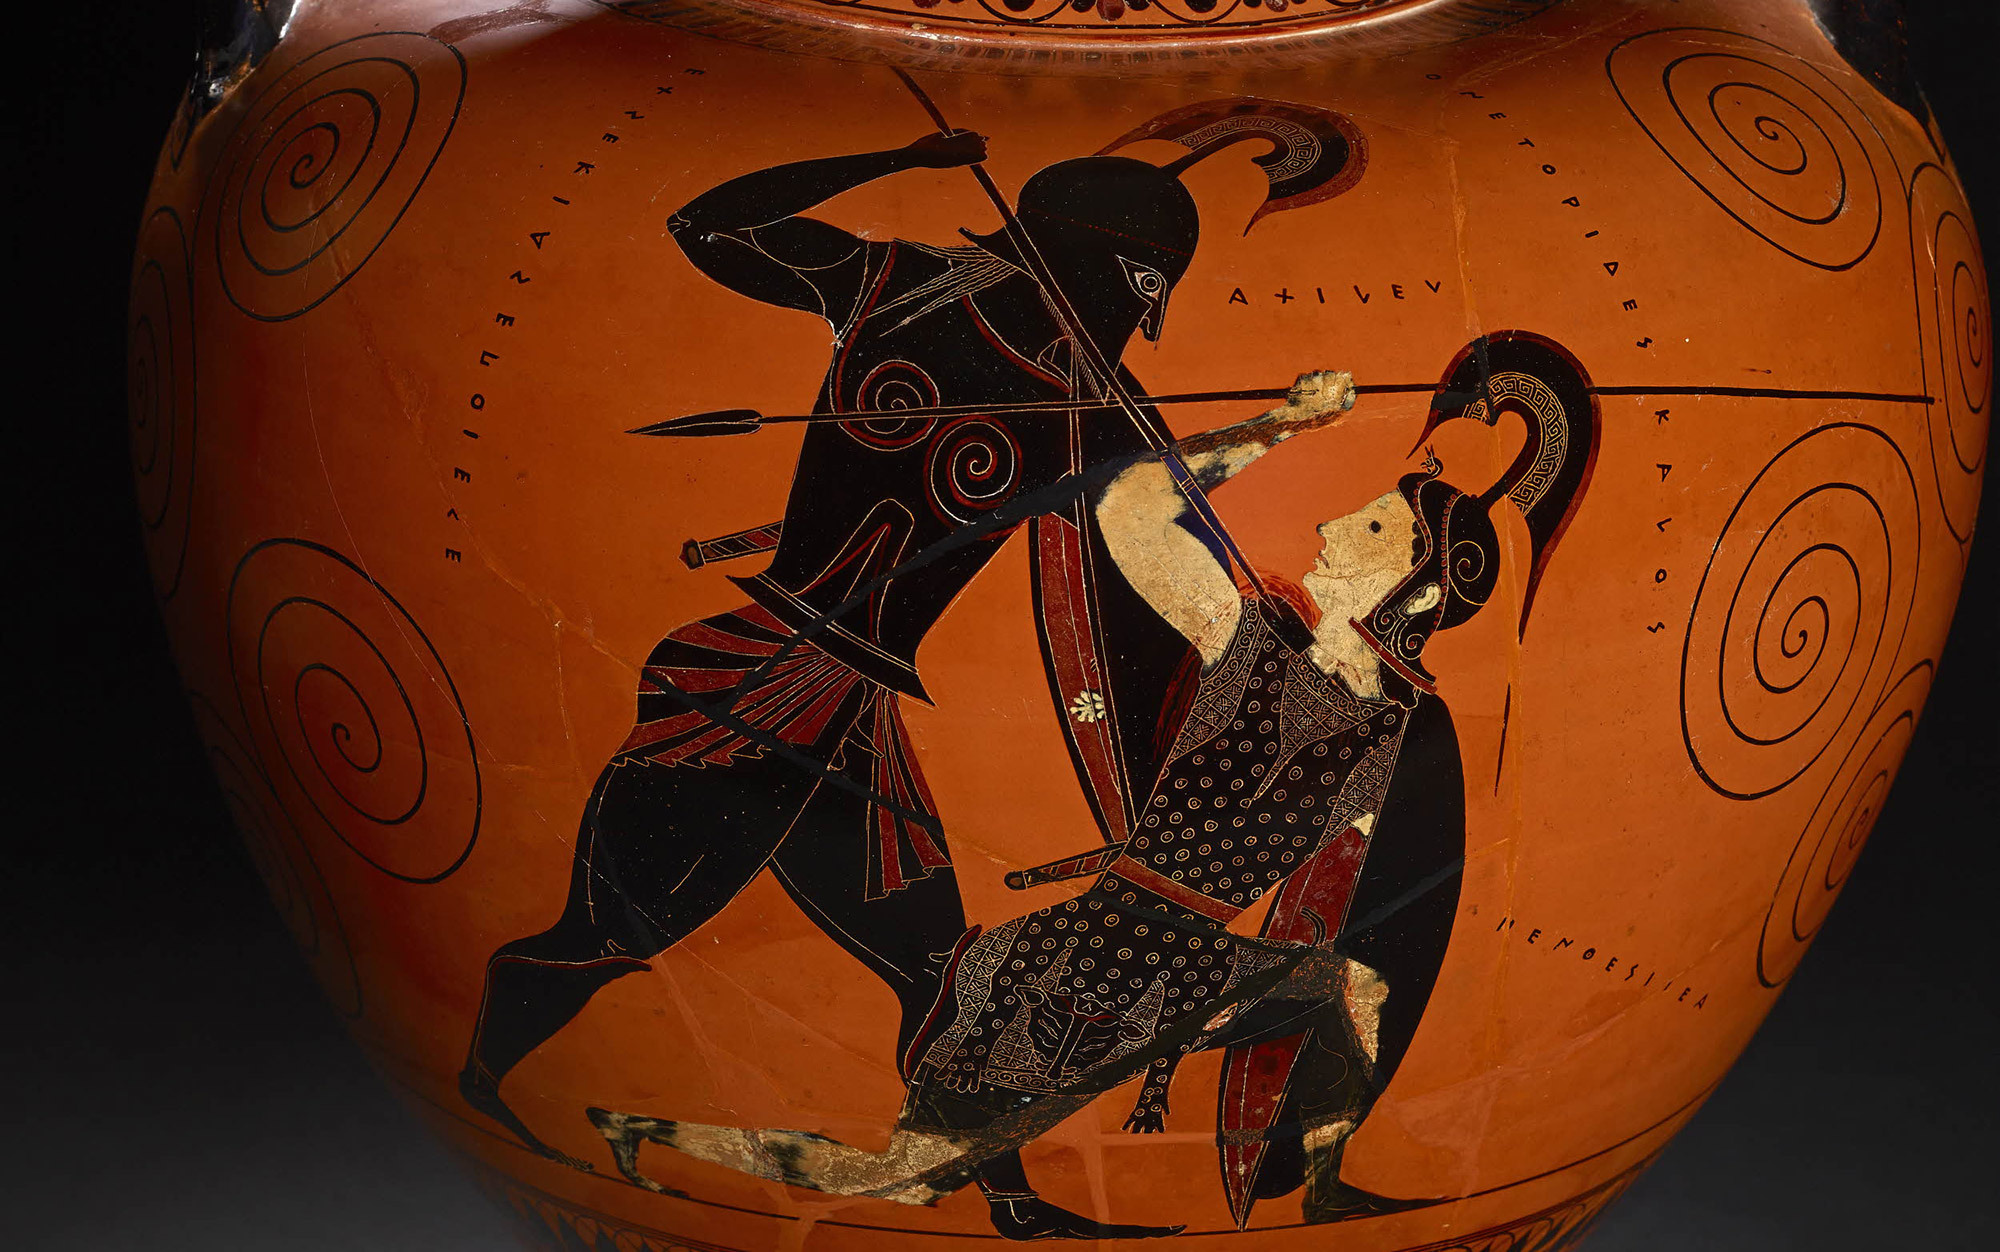 when homer envisioned achilles  did he see a black man